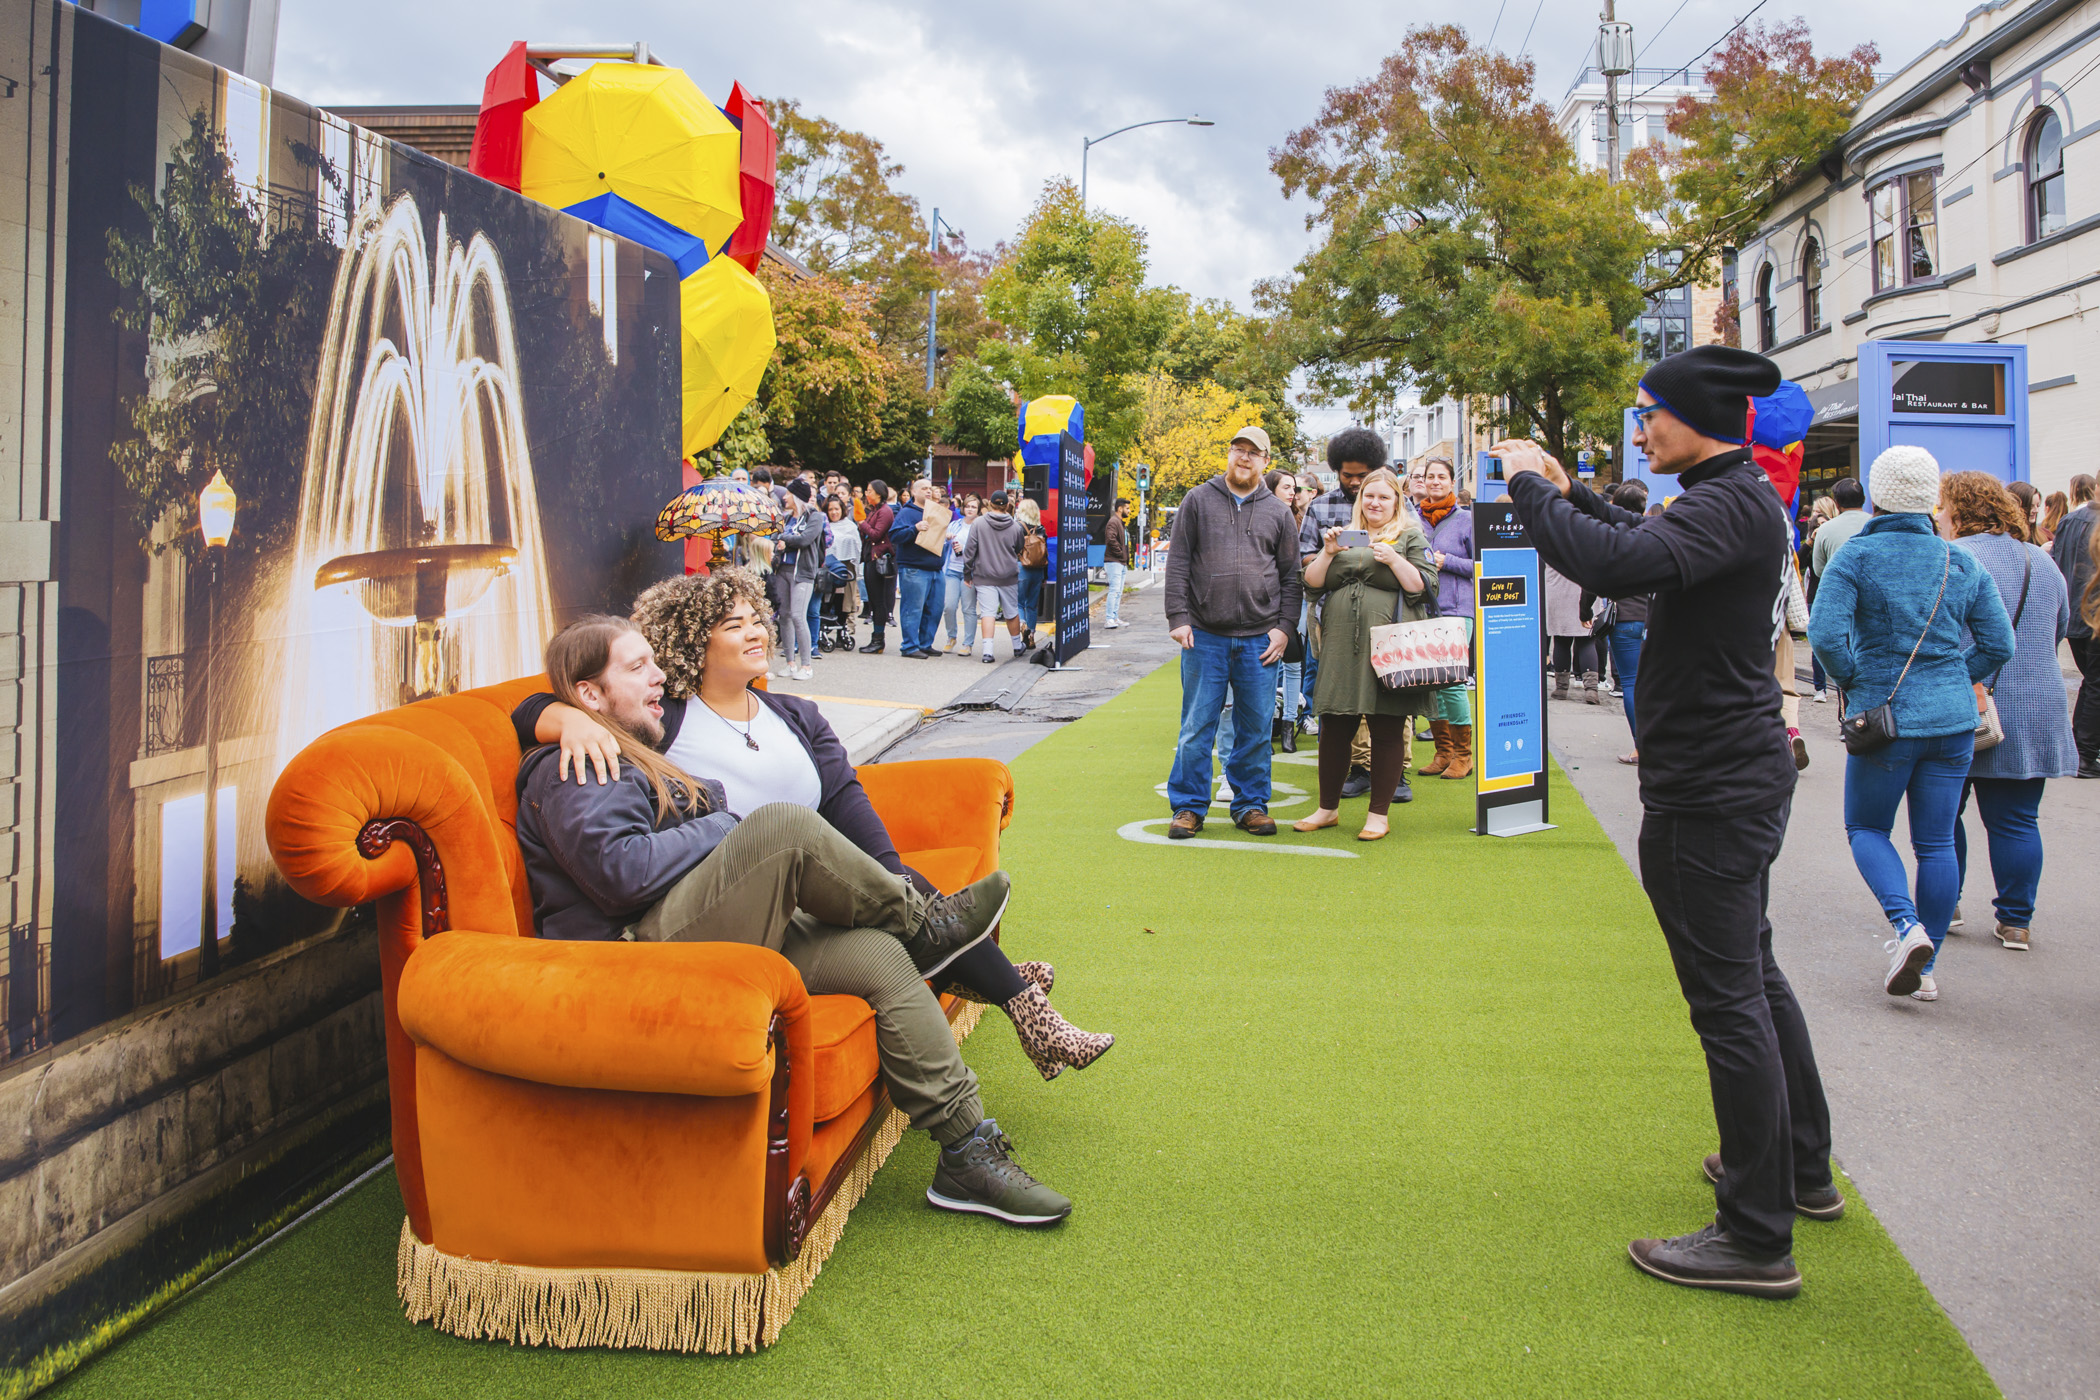 "The At&T Lounge in Capitol Hill was completely transformed into the iconic Central Perk Cafe on Sunday, Sept. 29 , 2019. Central Perk was the backdrop for the mega-hit series ""Friends"", which is celebrating it's 25th anniversary this year. The pop-up was free all day to patrons, who came to see the famous orange couch, Phoebe's Yellow Cab Escape Room, 'Friends' trivia and more. Even cooler? The Rembrandts were on-hand to perform their famous theme song ""I'll Be There For You"", along with other Friends-themed songs and a special appearance by James Michael Tyler, aka Gunther. (Image: Sunita Martini / Seattle Refined){ }"